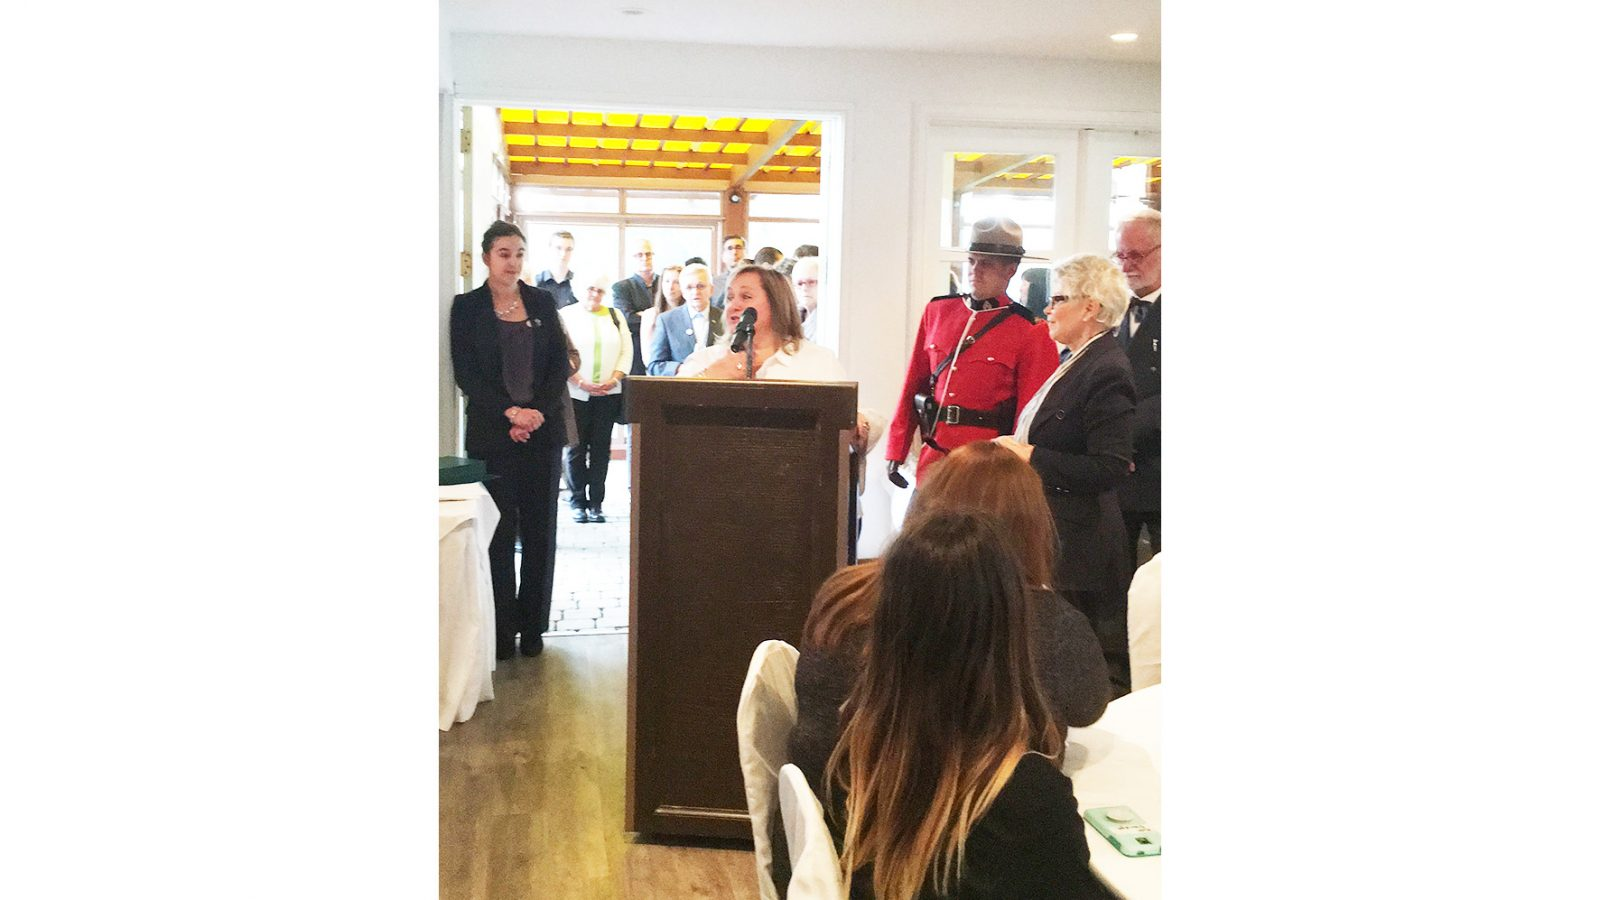 Paradis honours community leaders